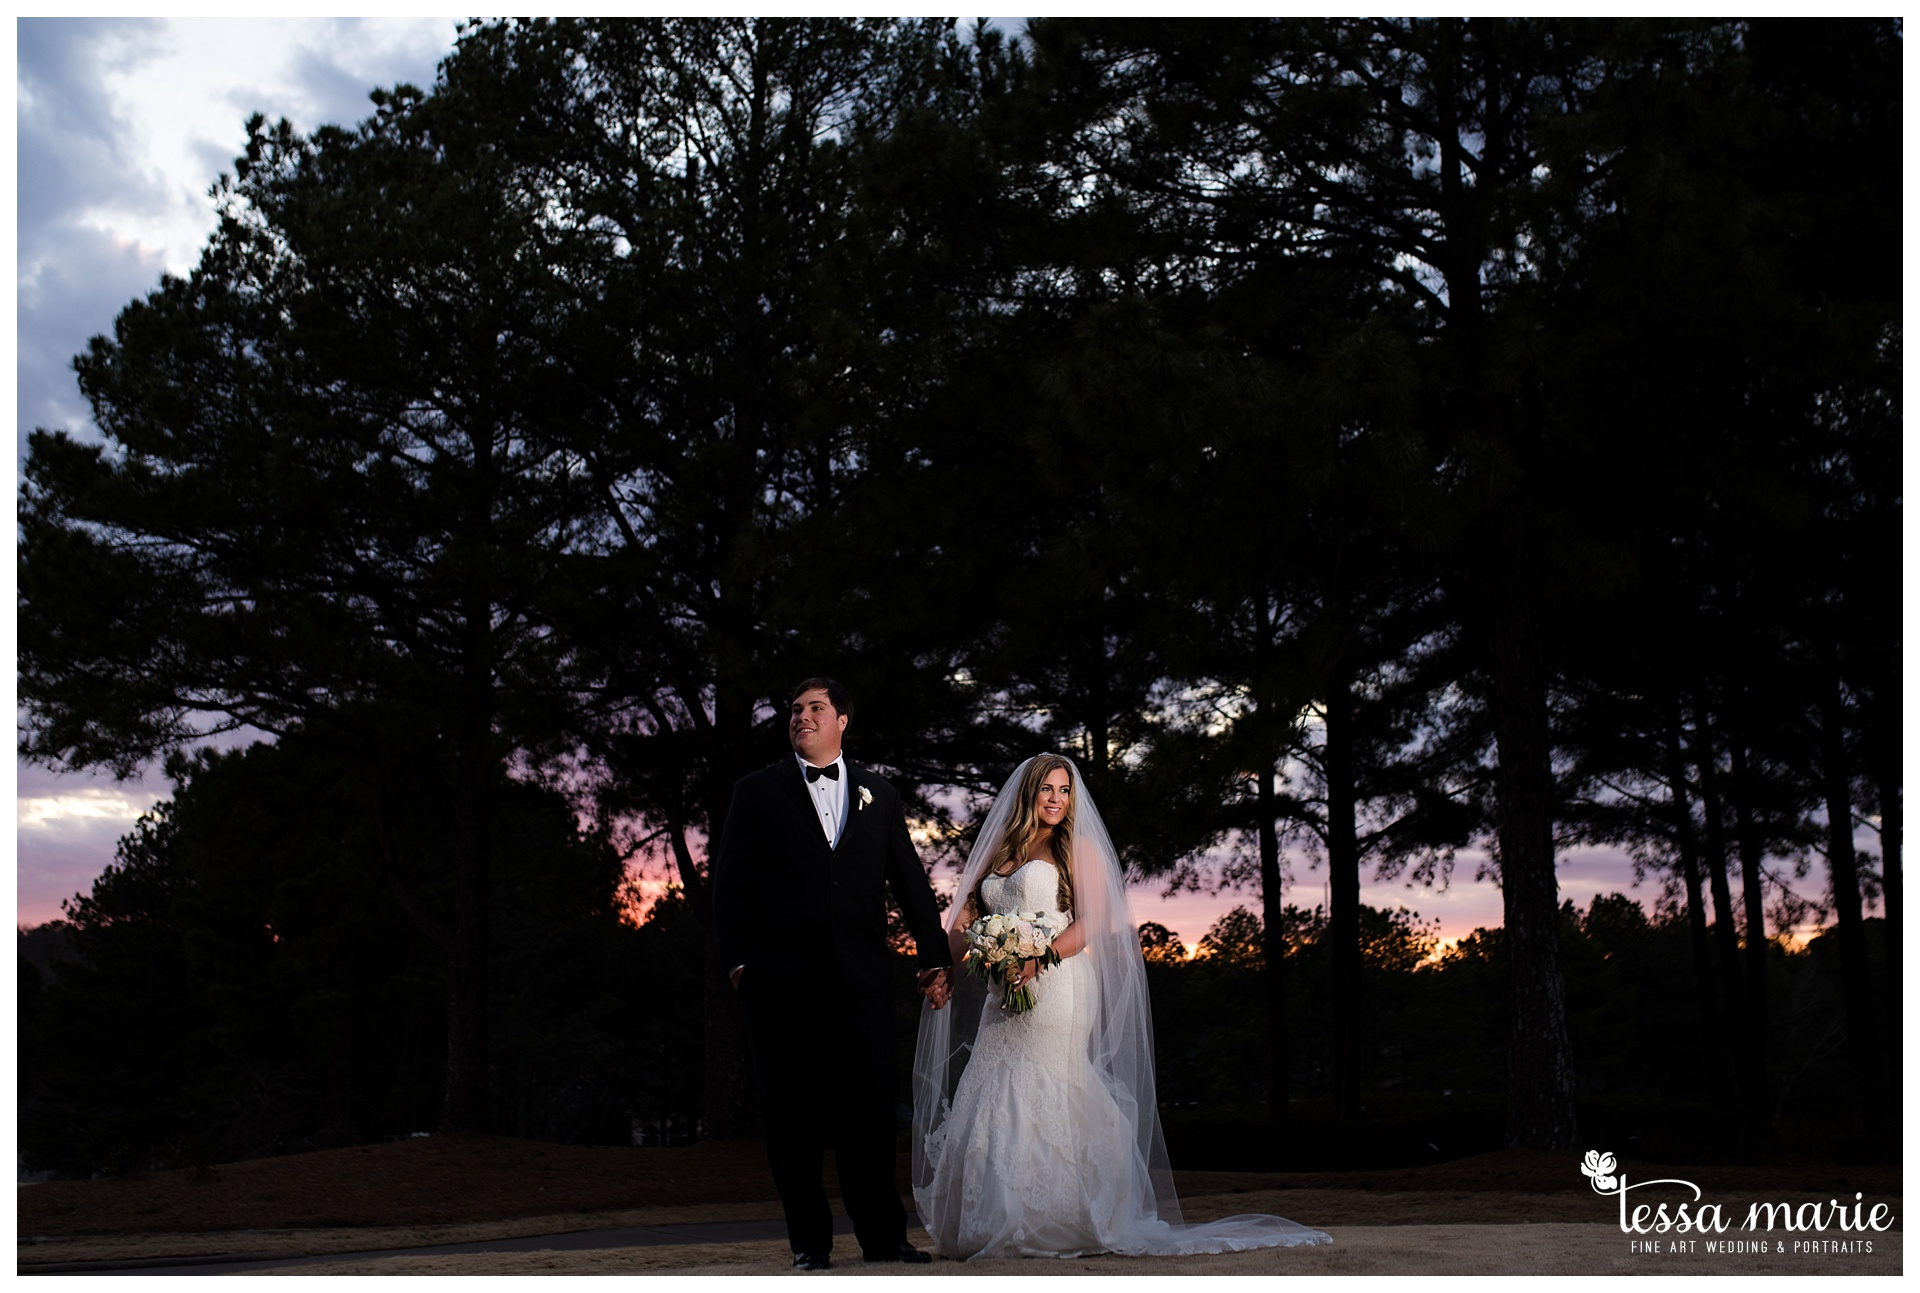 tessa_marie_weddings_legacy_story_focused_wedding_pictures_atlanta_wedding_photographer_0136